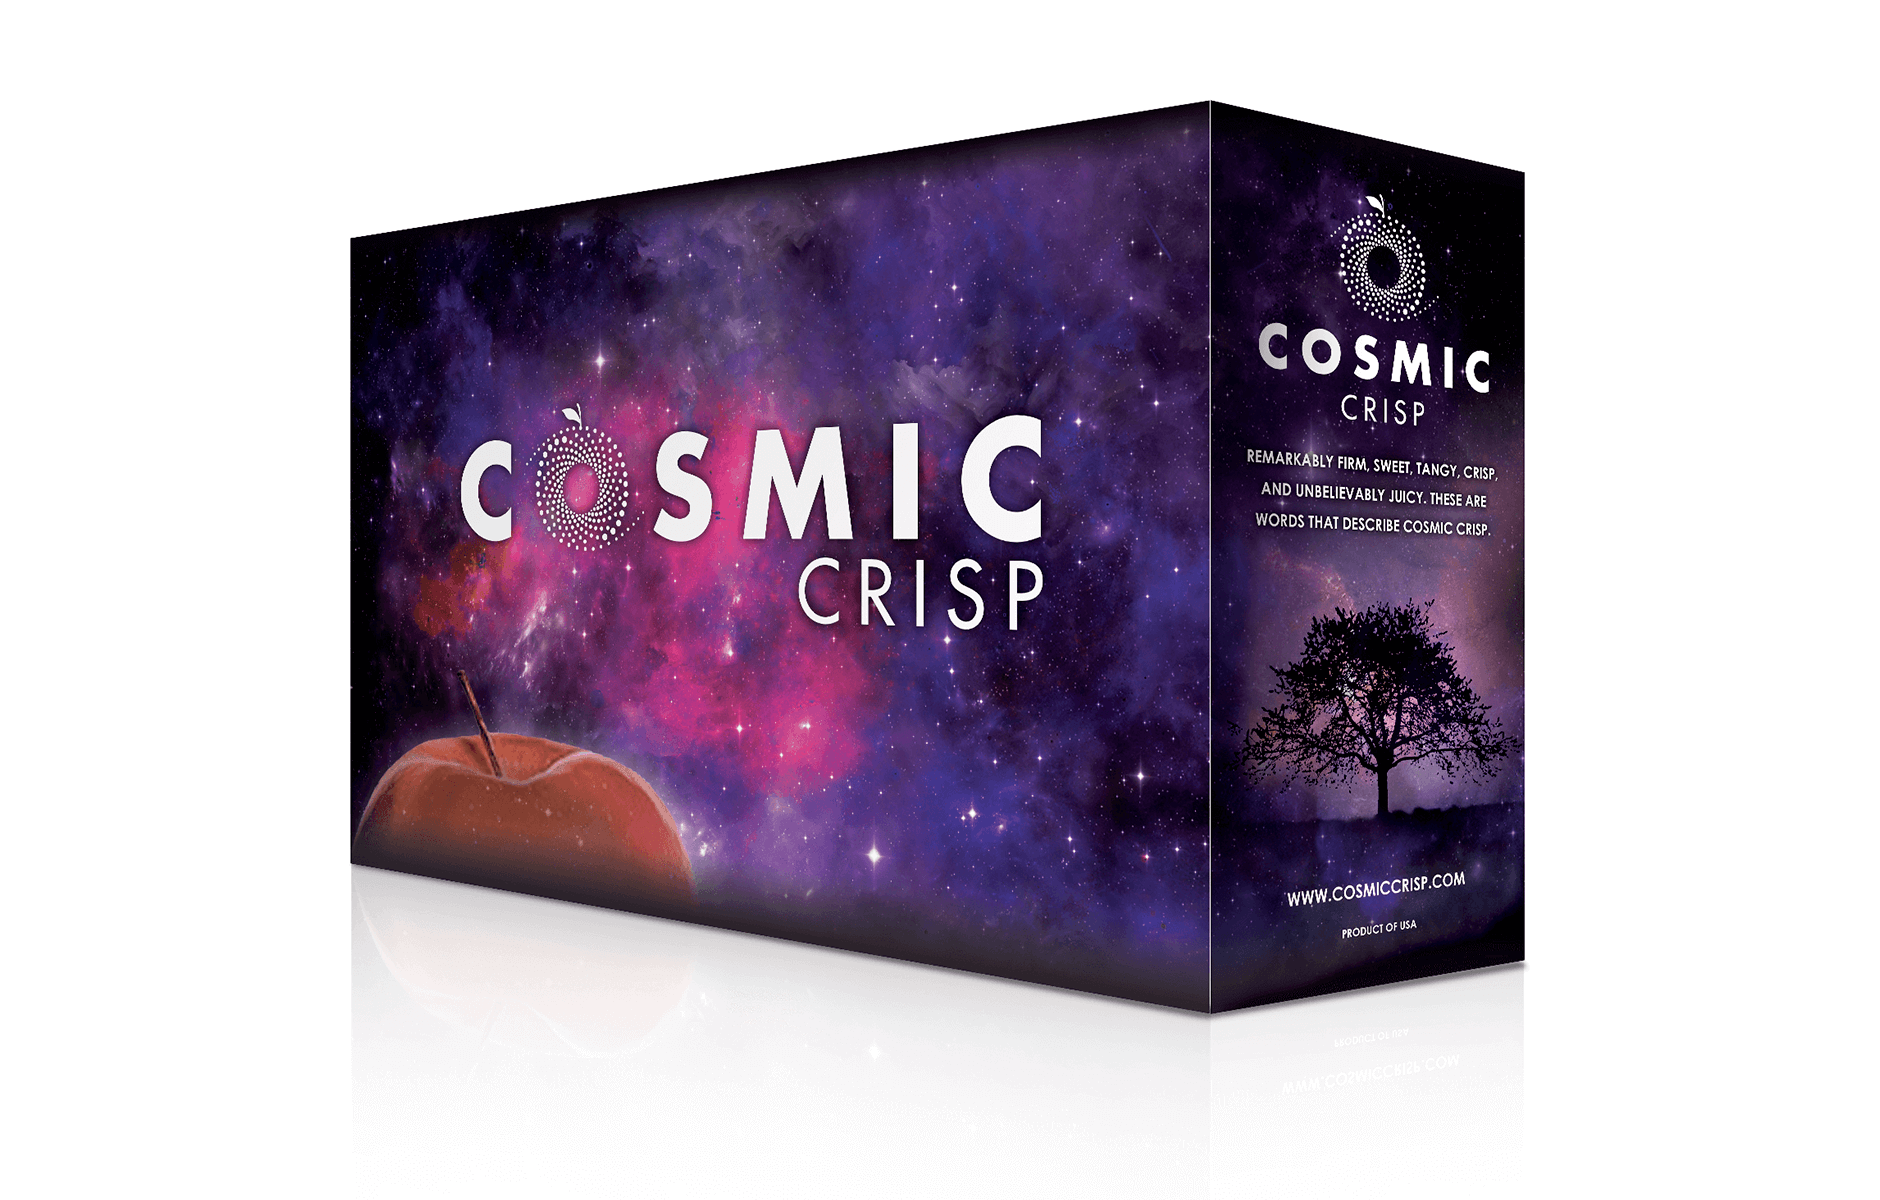 4 Box Sleeve (2)  • Fits over stack of four 40 lb. apple boxes, stacked two boxes high • Full logo on front panel over nebula image and planetary apple in front • Logo, varietal text and website on side panel